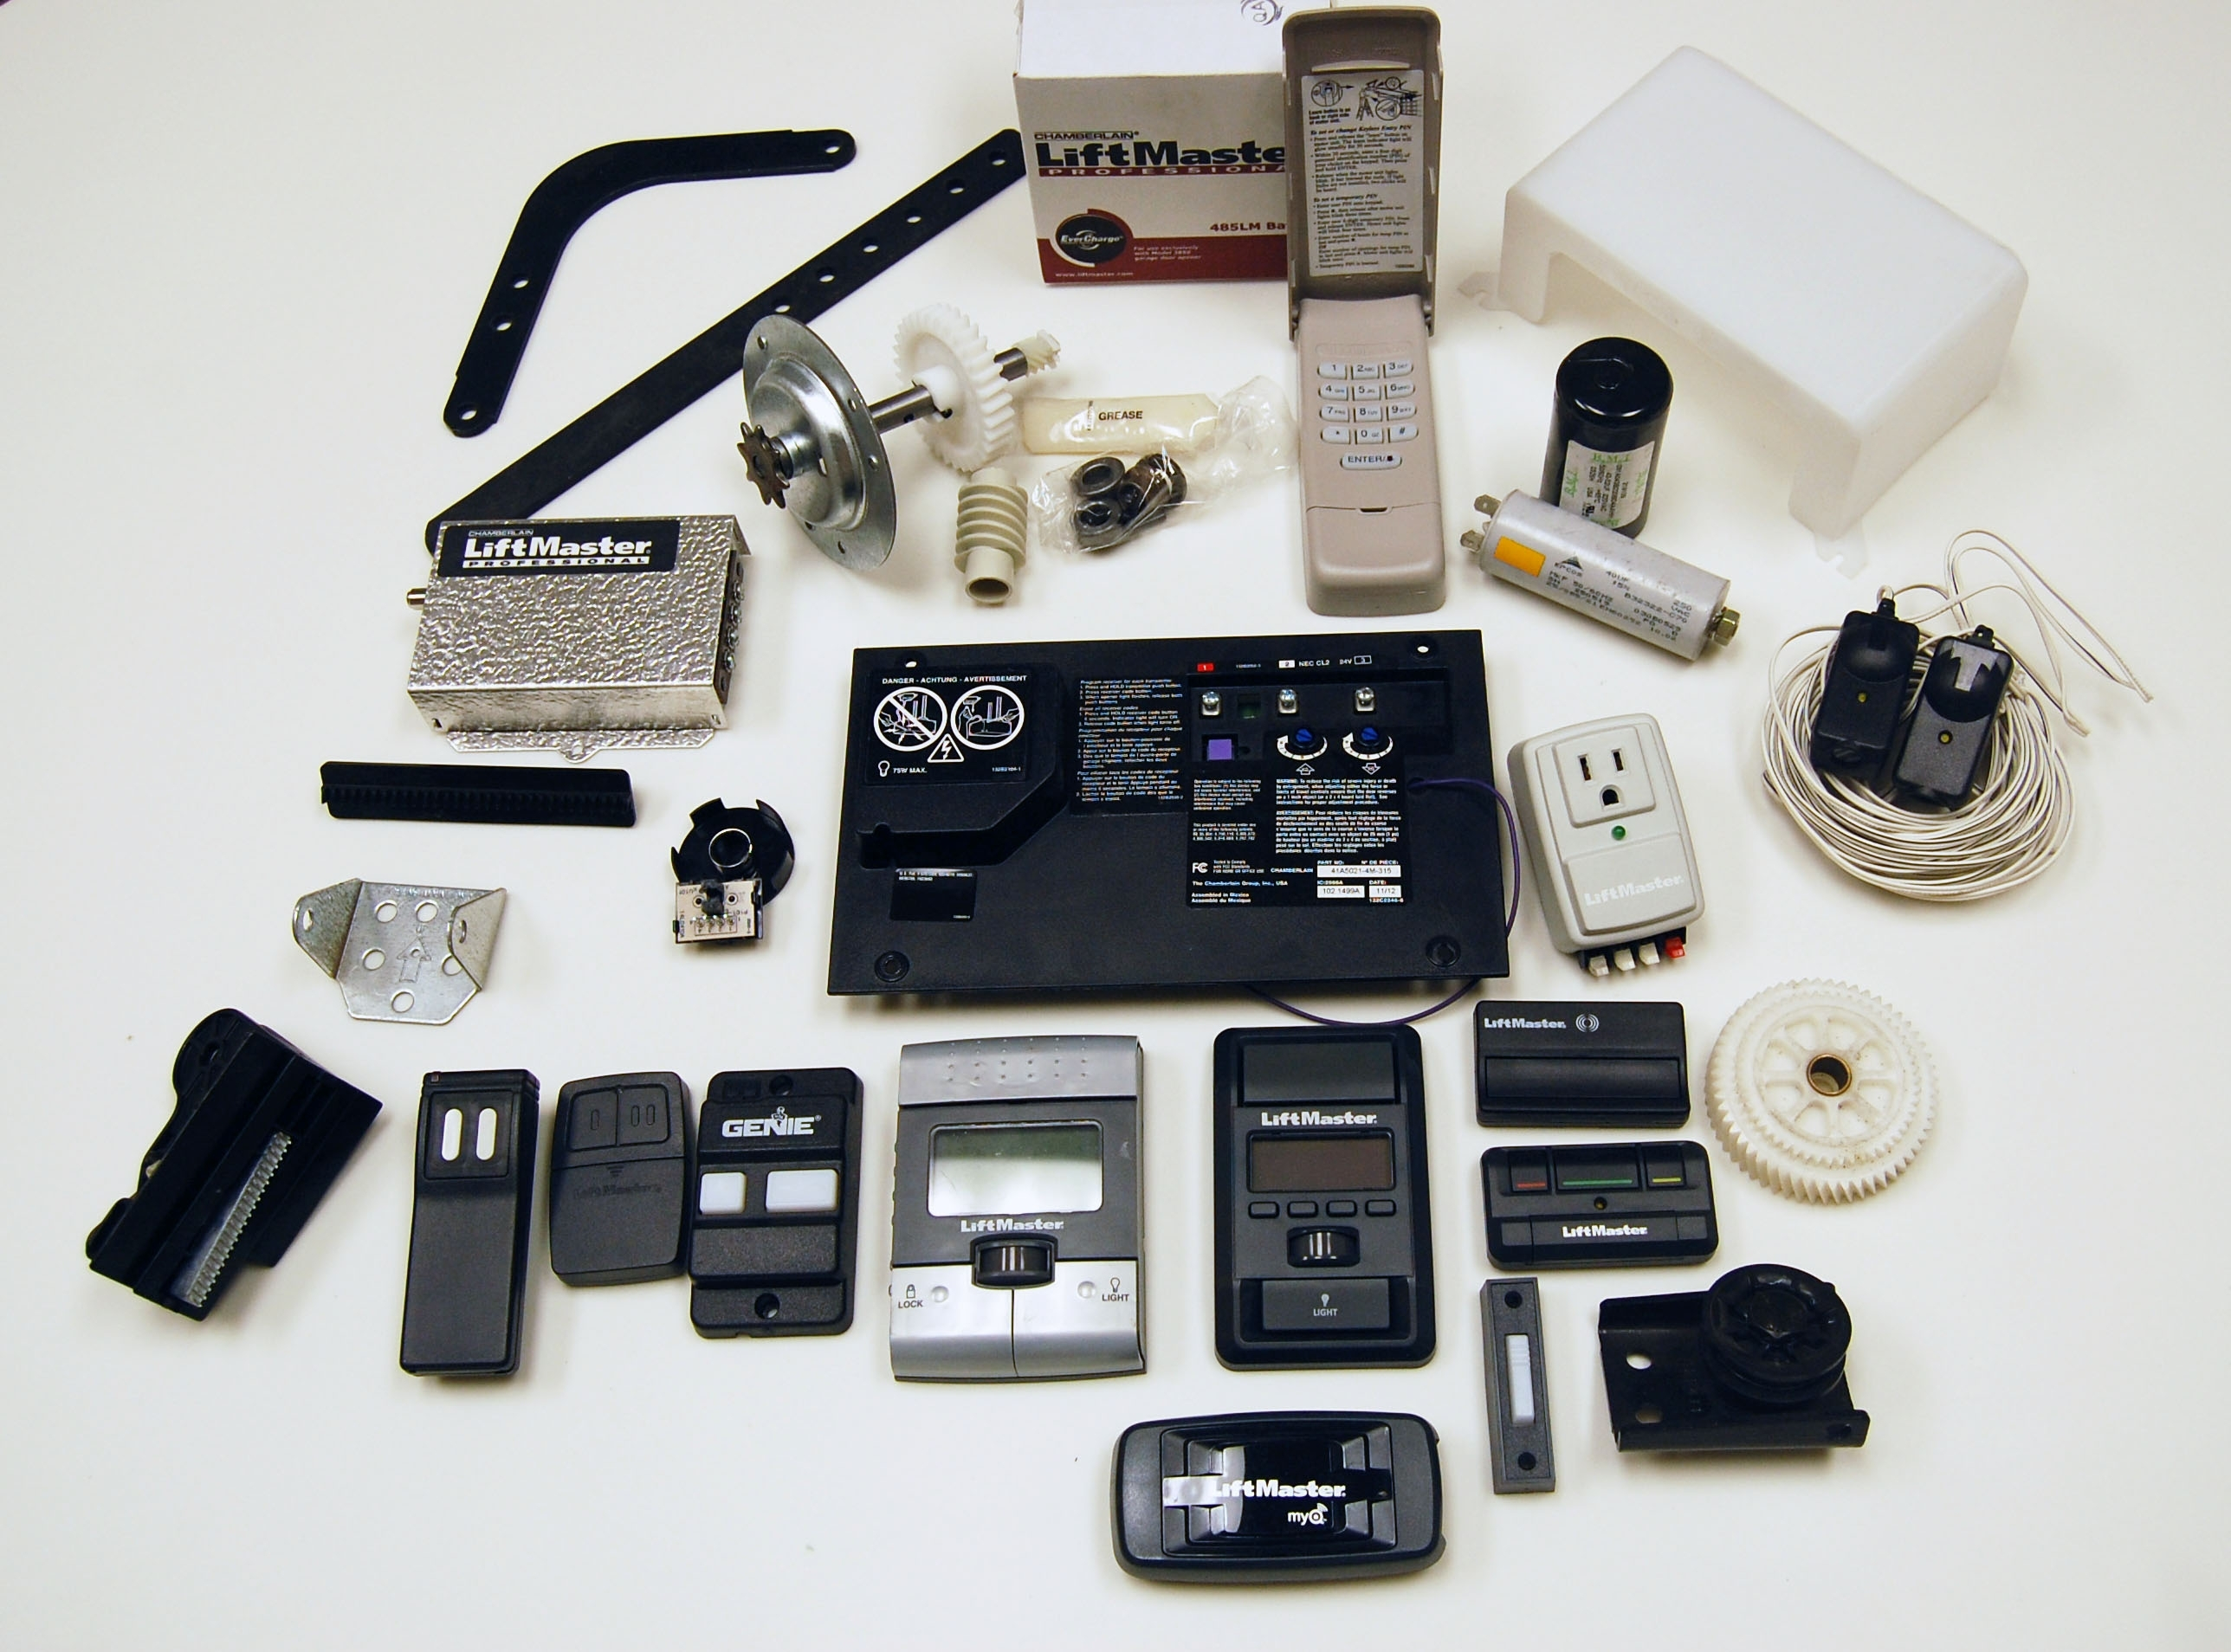 Chamberlain Liftmaster Garage Door Opener Parts Regarding inside Liftmaster Garage Door Opener Parts Diagram